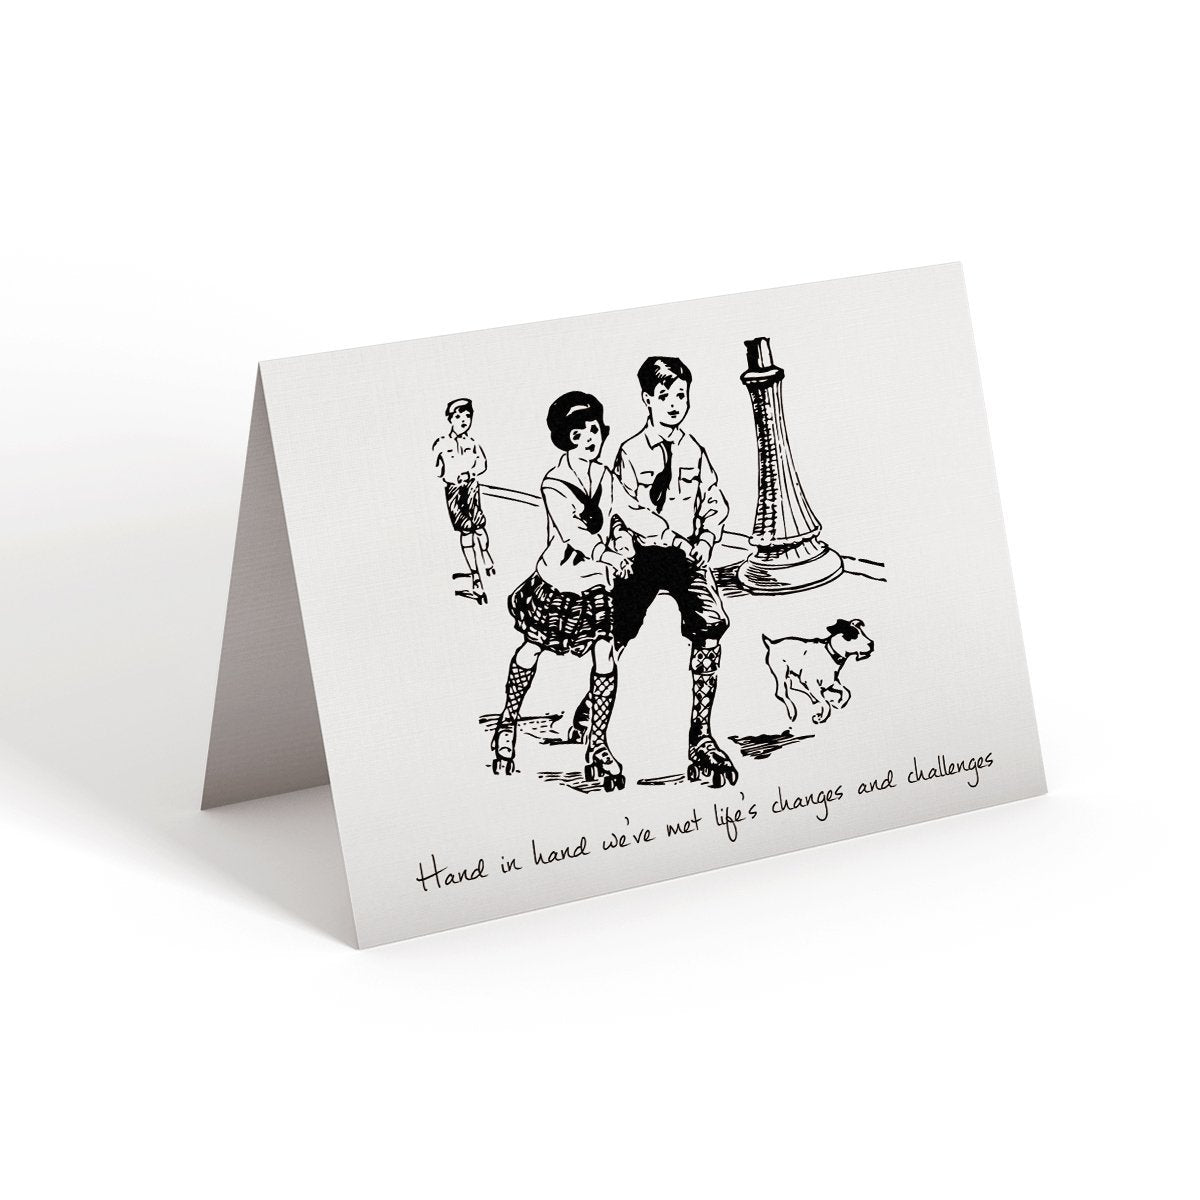 Hand in hand - Greeting Card - Netties Expressions